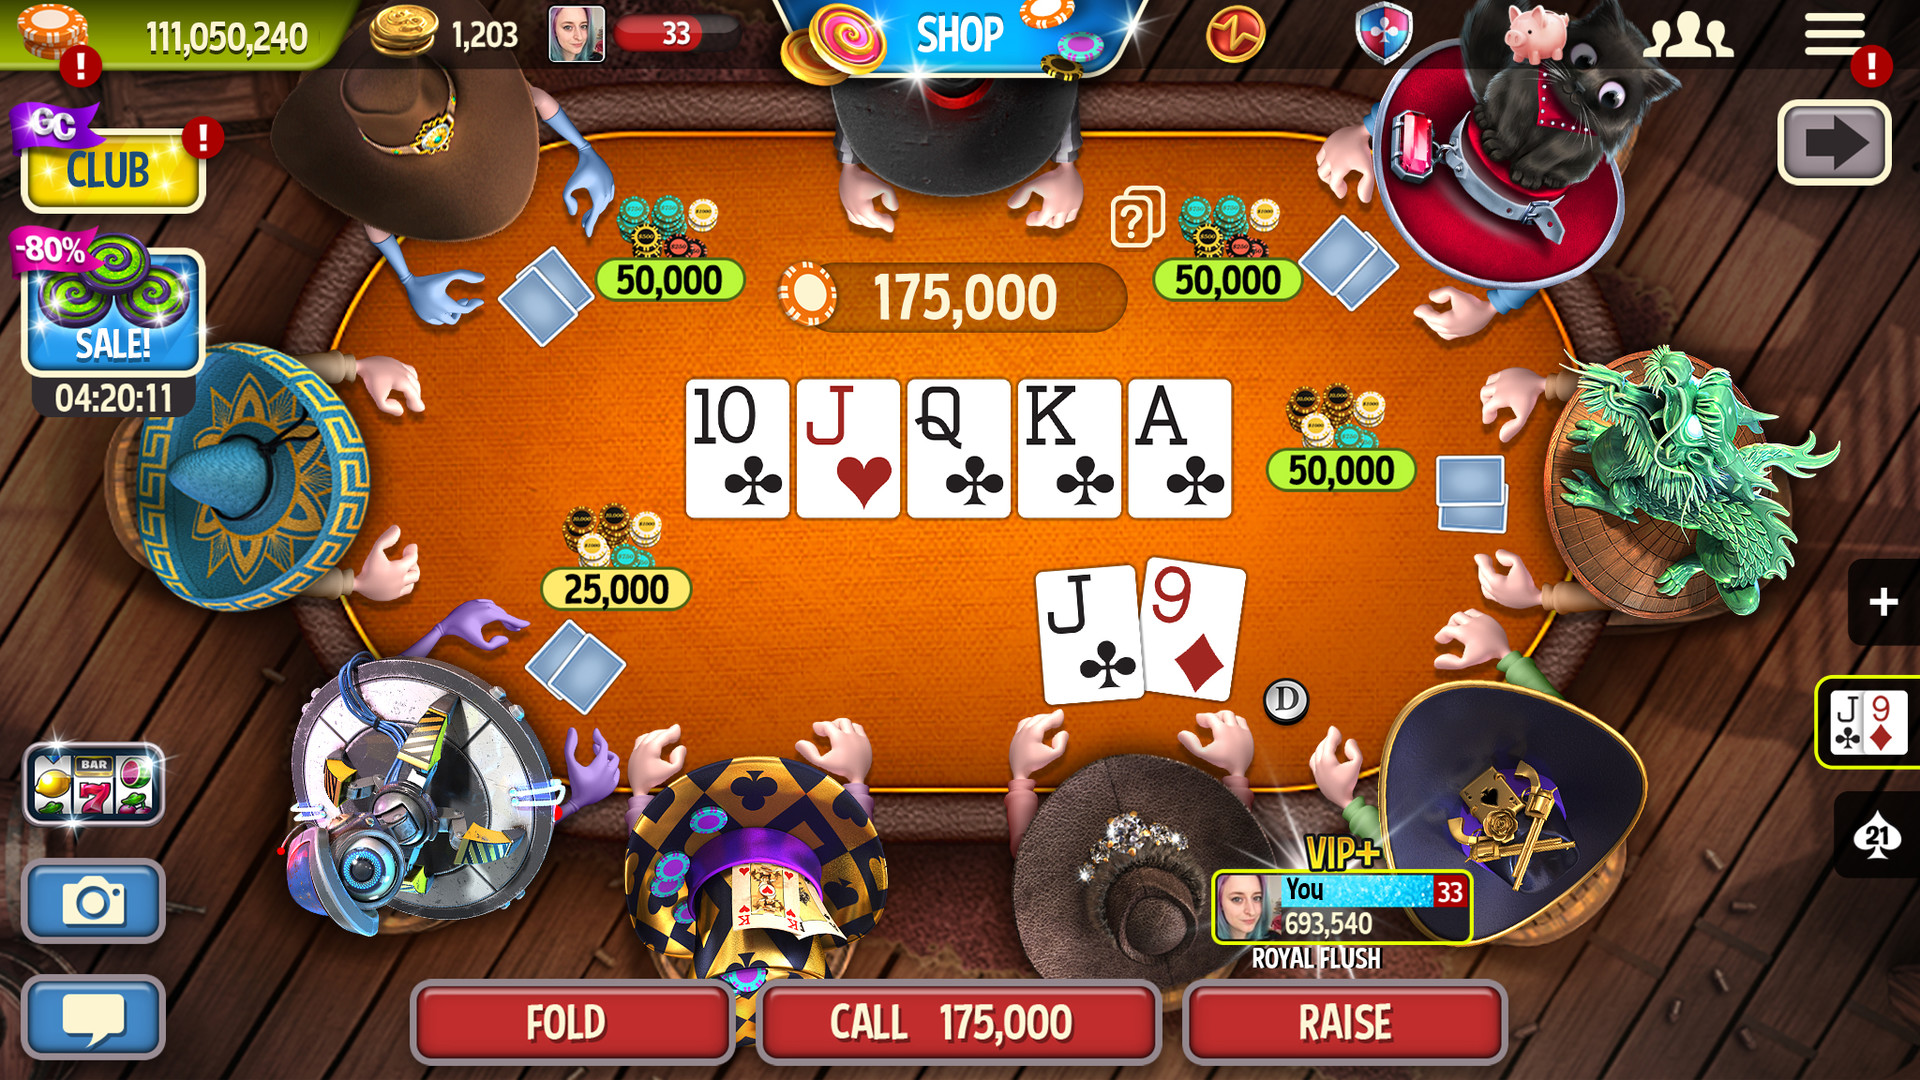 Claim Governor of Poker 3 for free